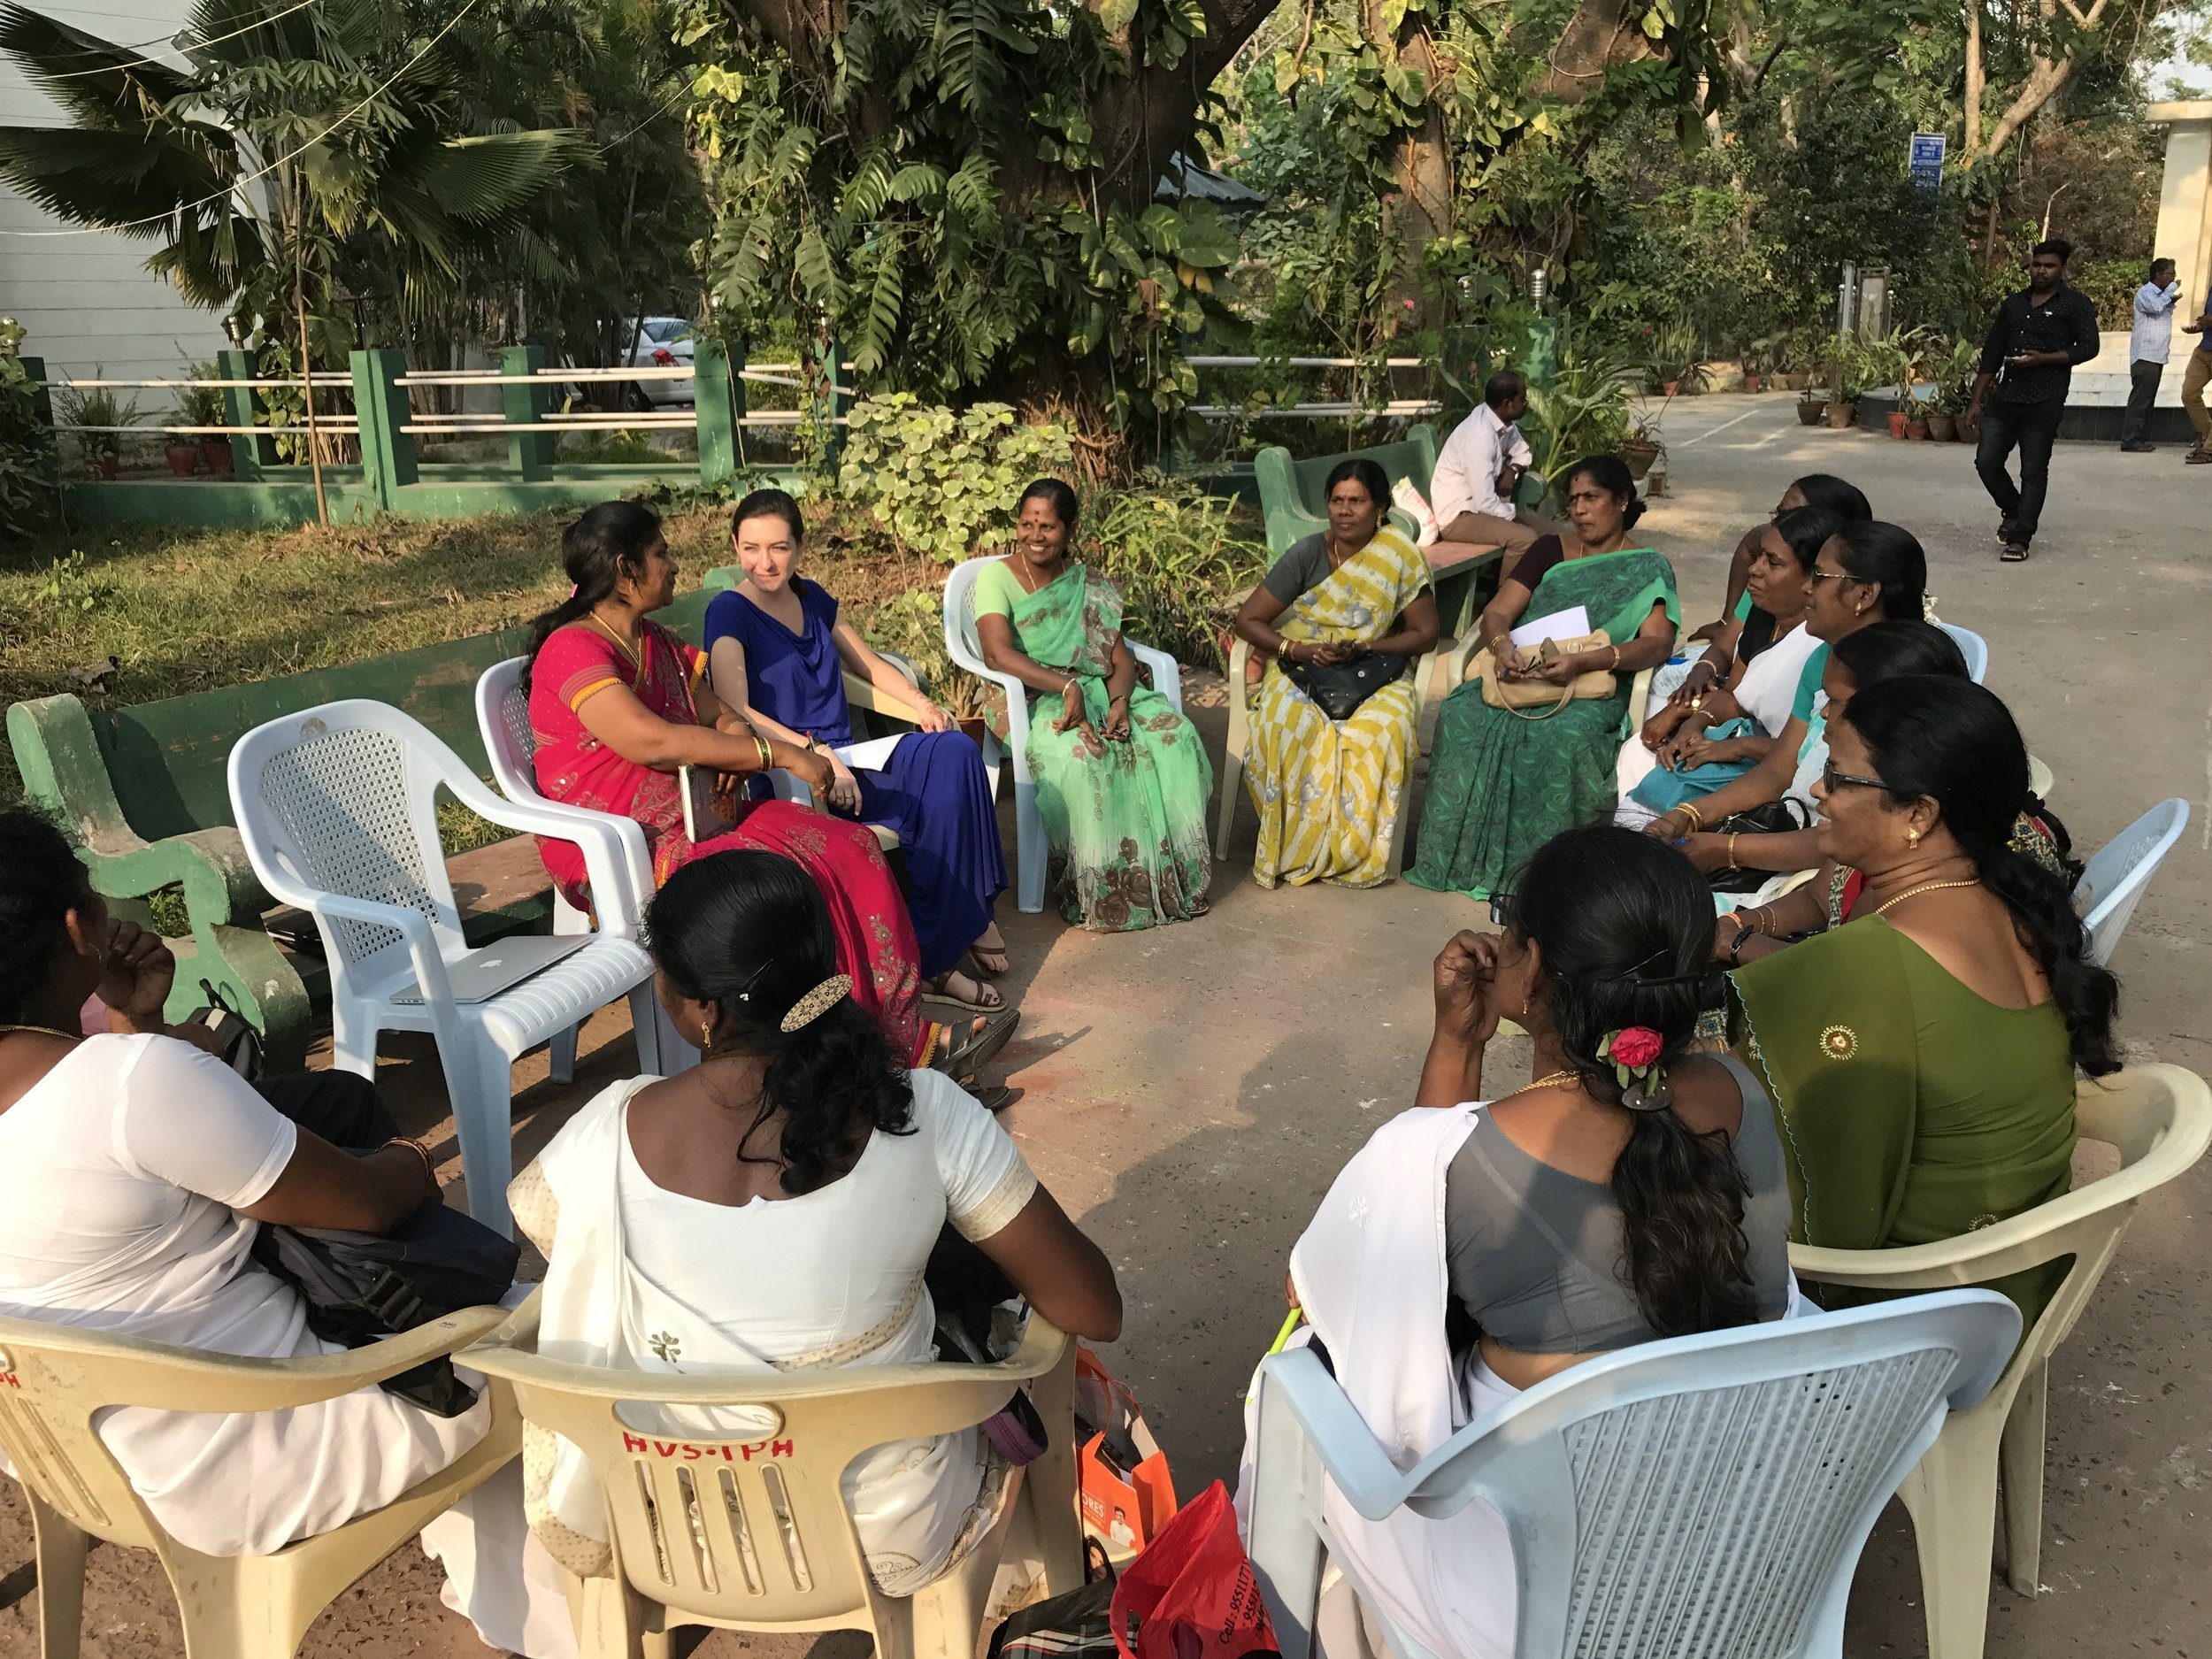 Chennai, India IDEV Practicum Team member Rose Fishman (second from left) conducts a focus group with VHNs at the Poonamallee IPH, assisted by Ms. Eswari (left). Focus groups were conducted toward the end of fieldwork to validate findings and to discuss proposed recommendations with the VHNs responsible for using data systems in the field.